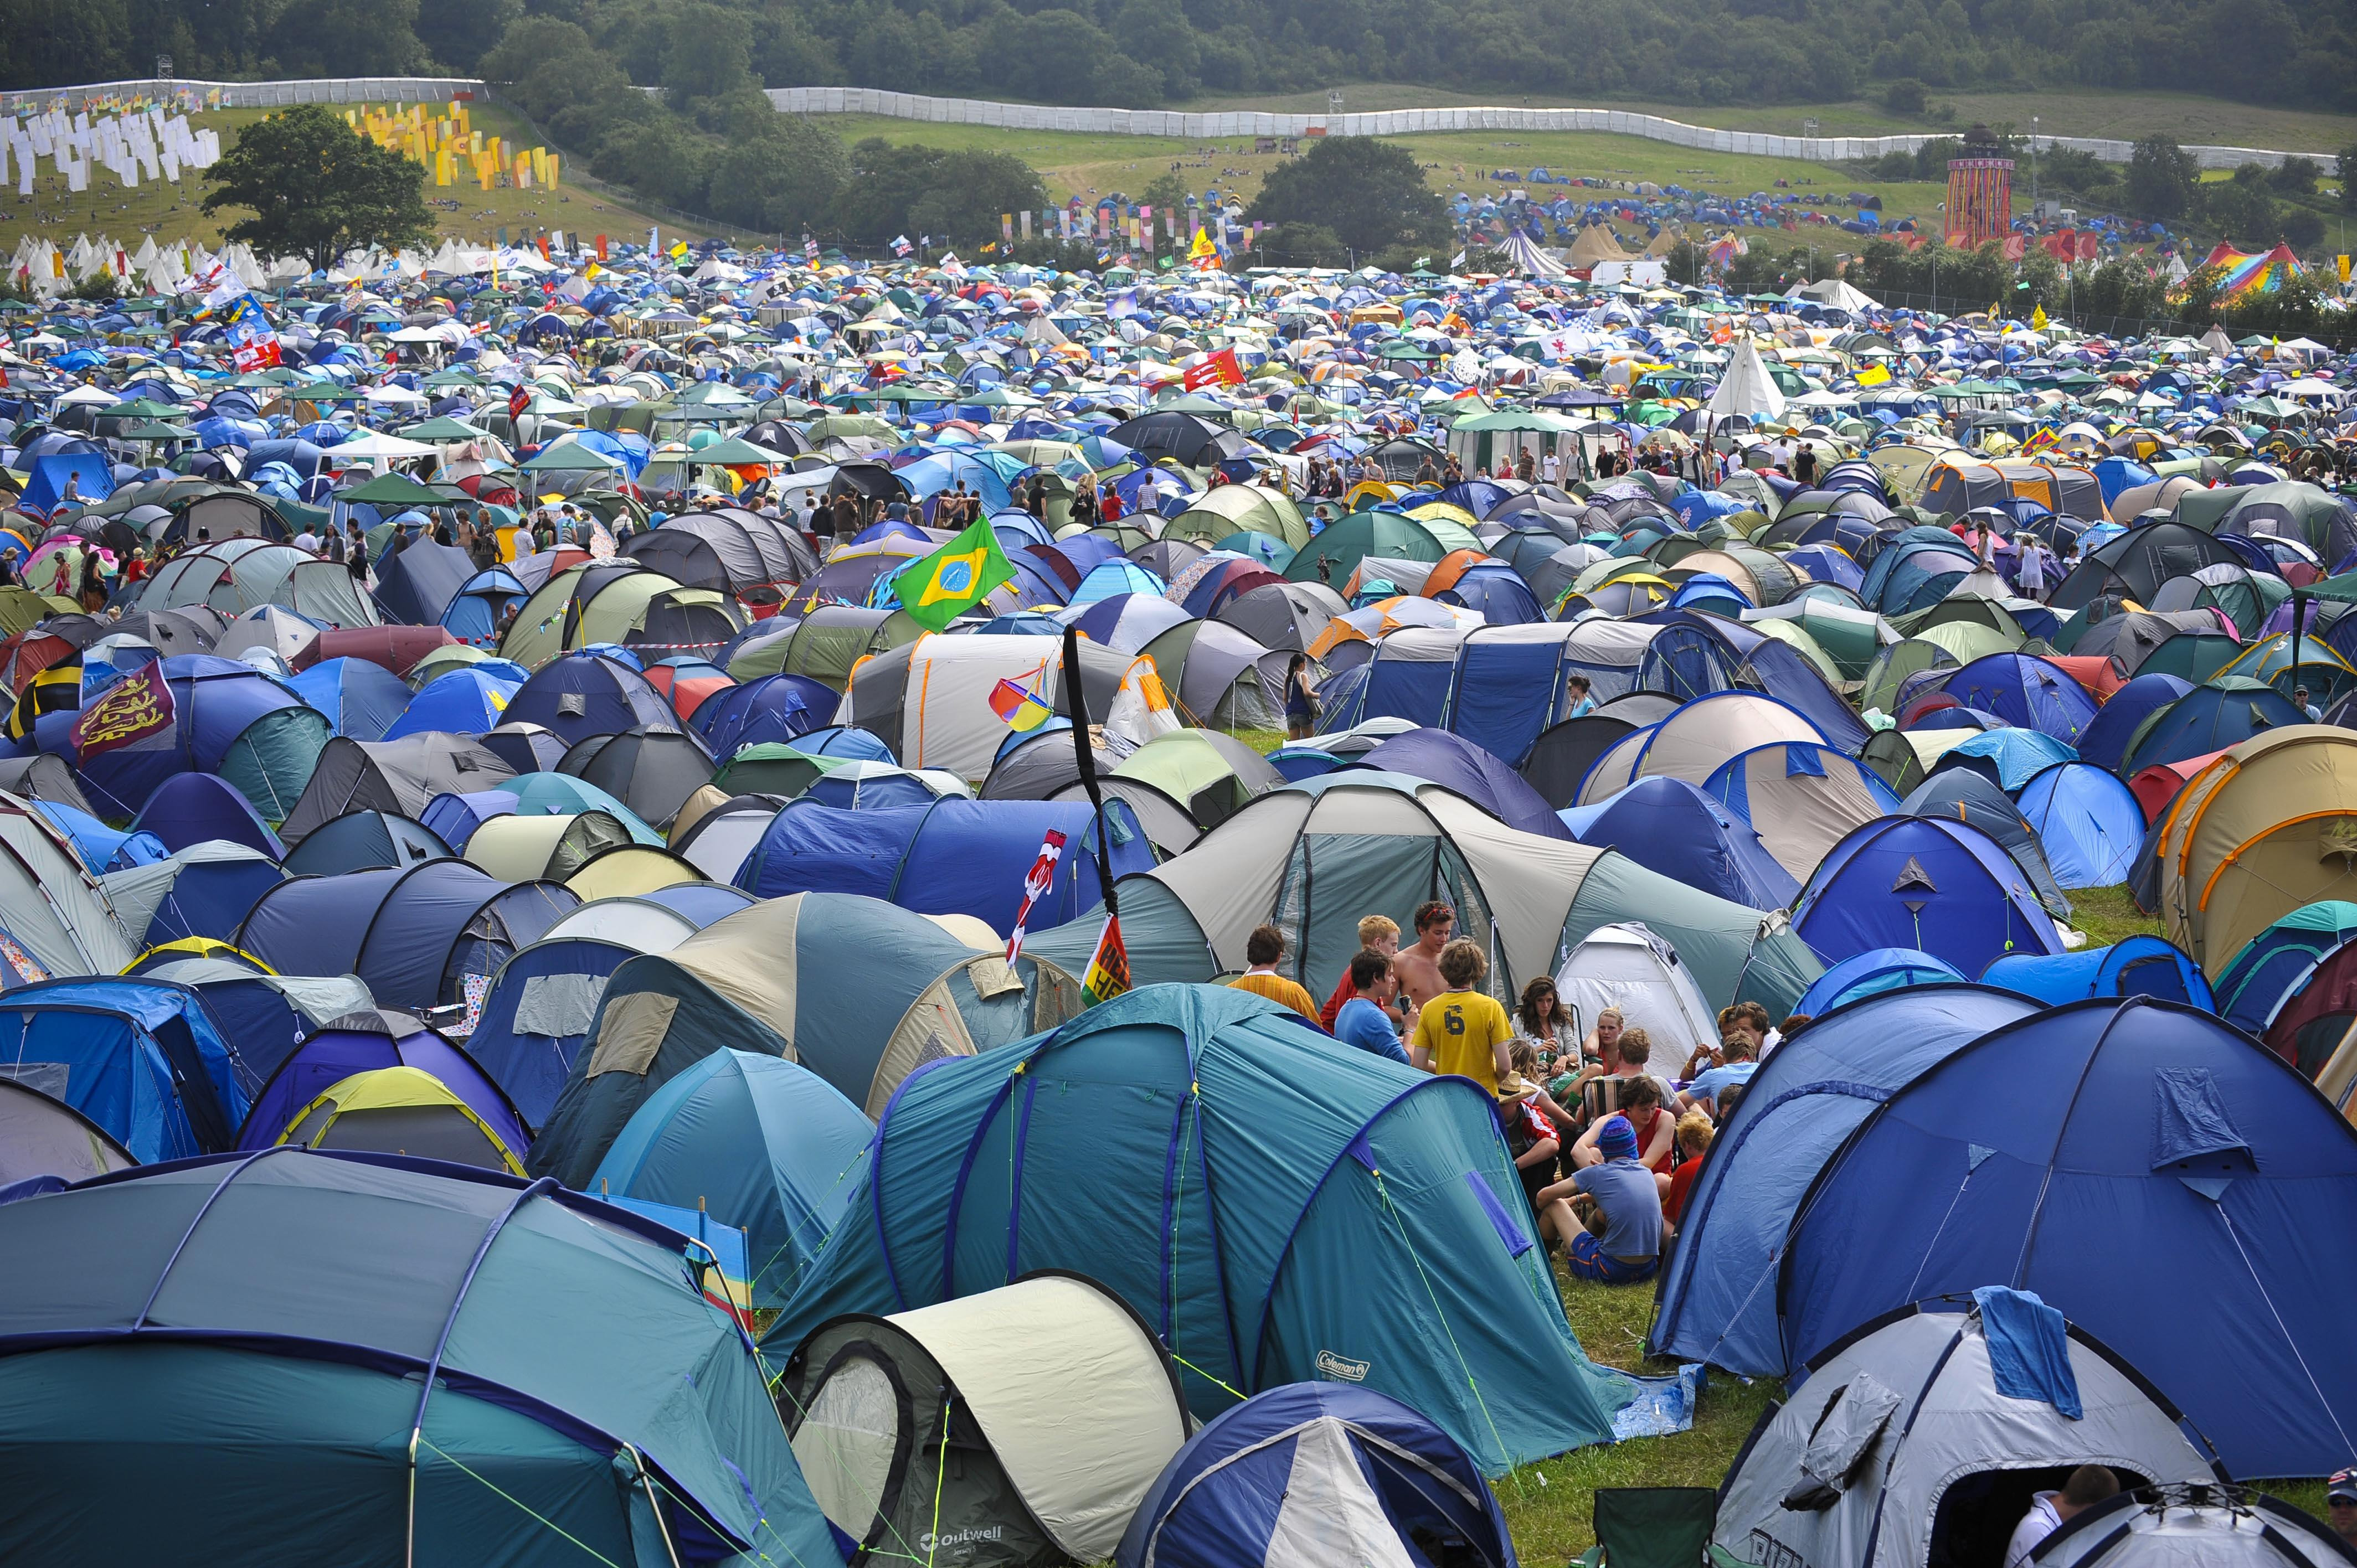 Glastonbury tents